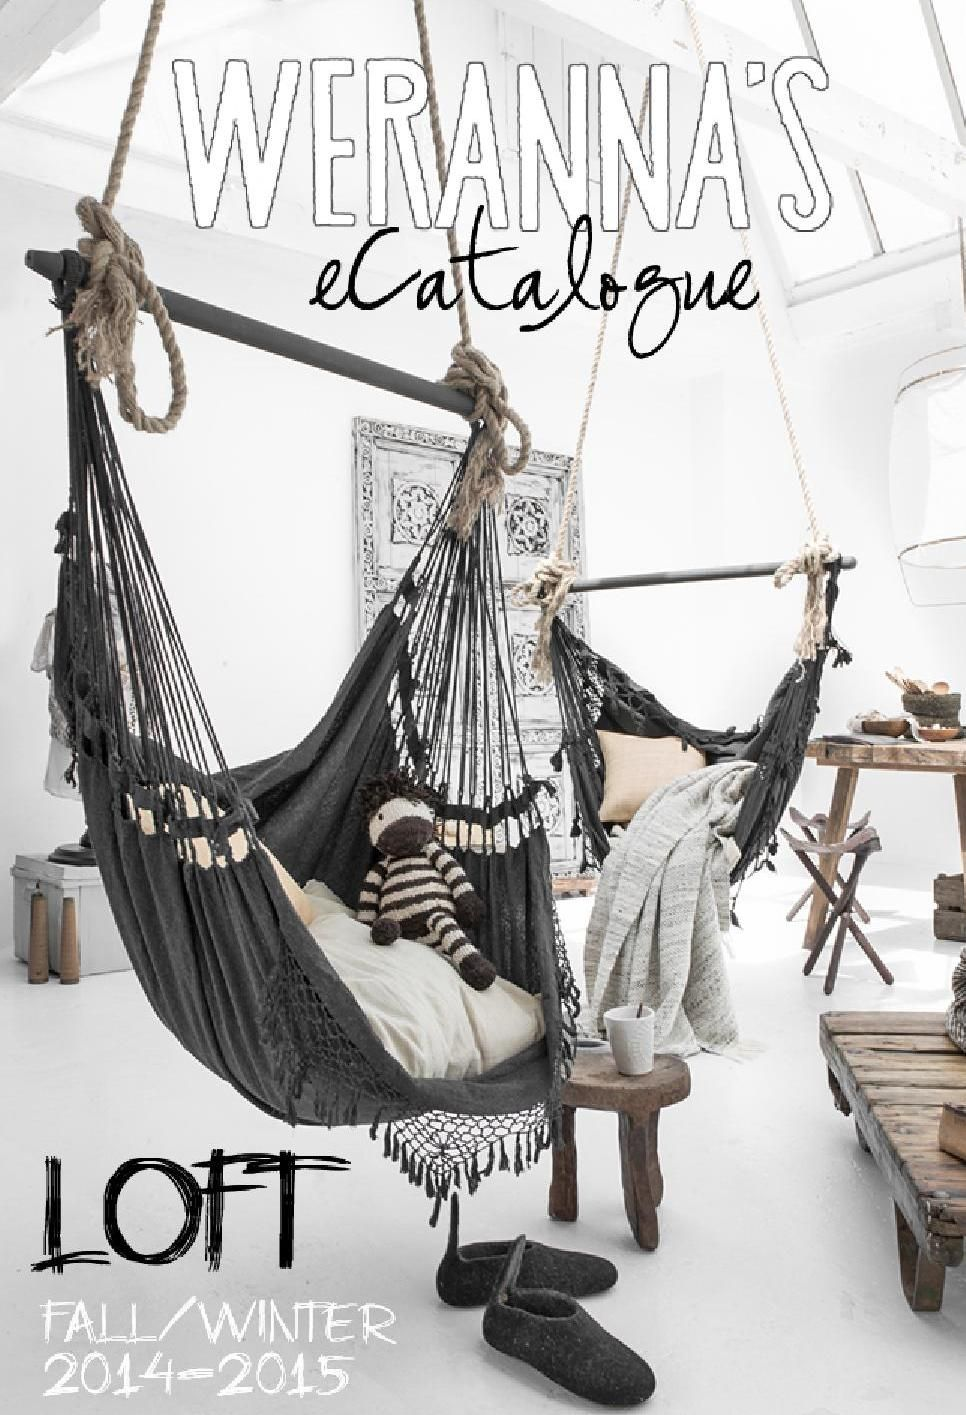 Werannas loft ecatalogue lofts hammock chair and room decor